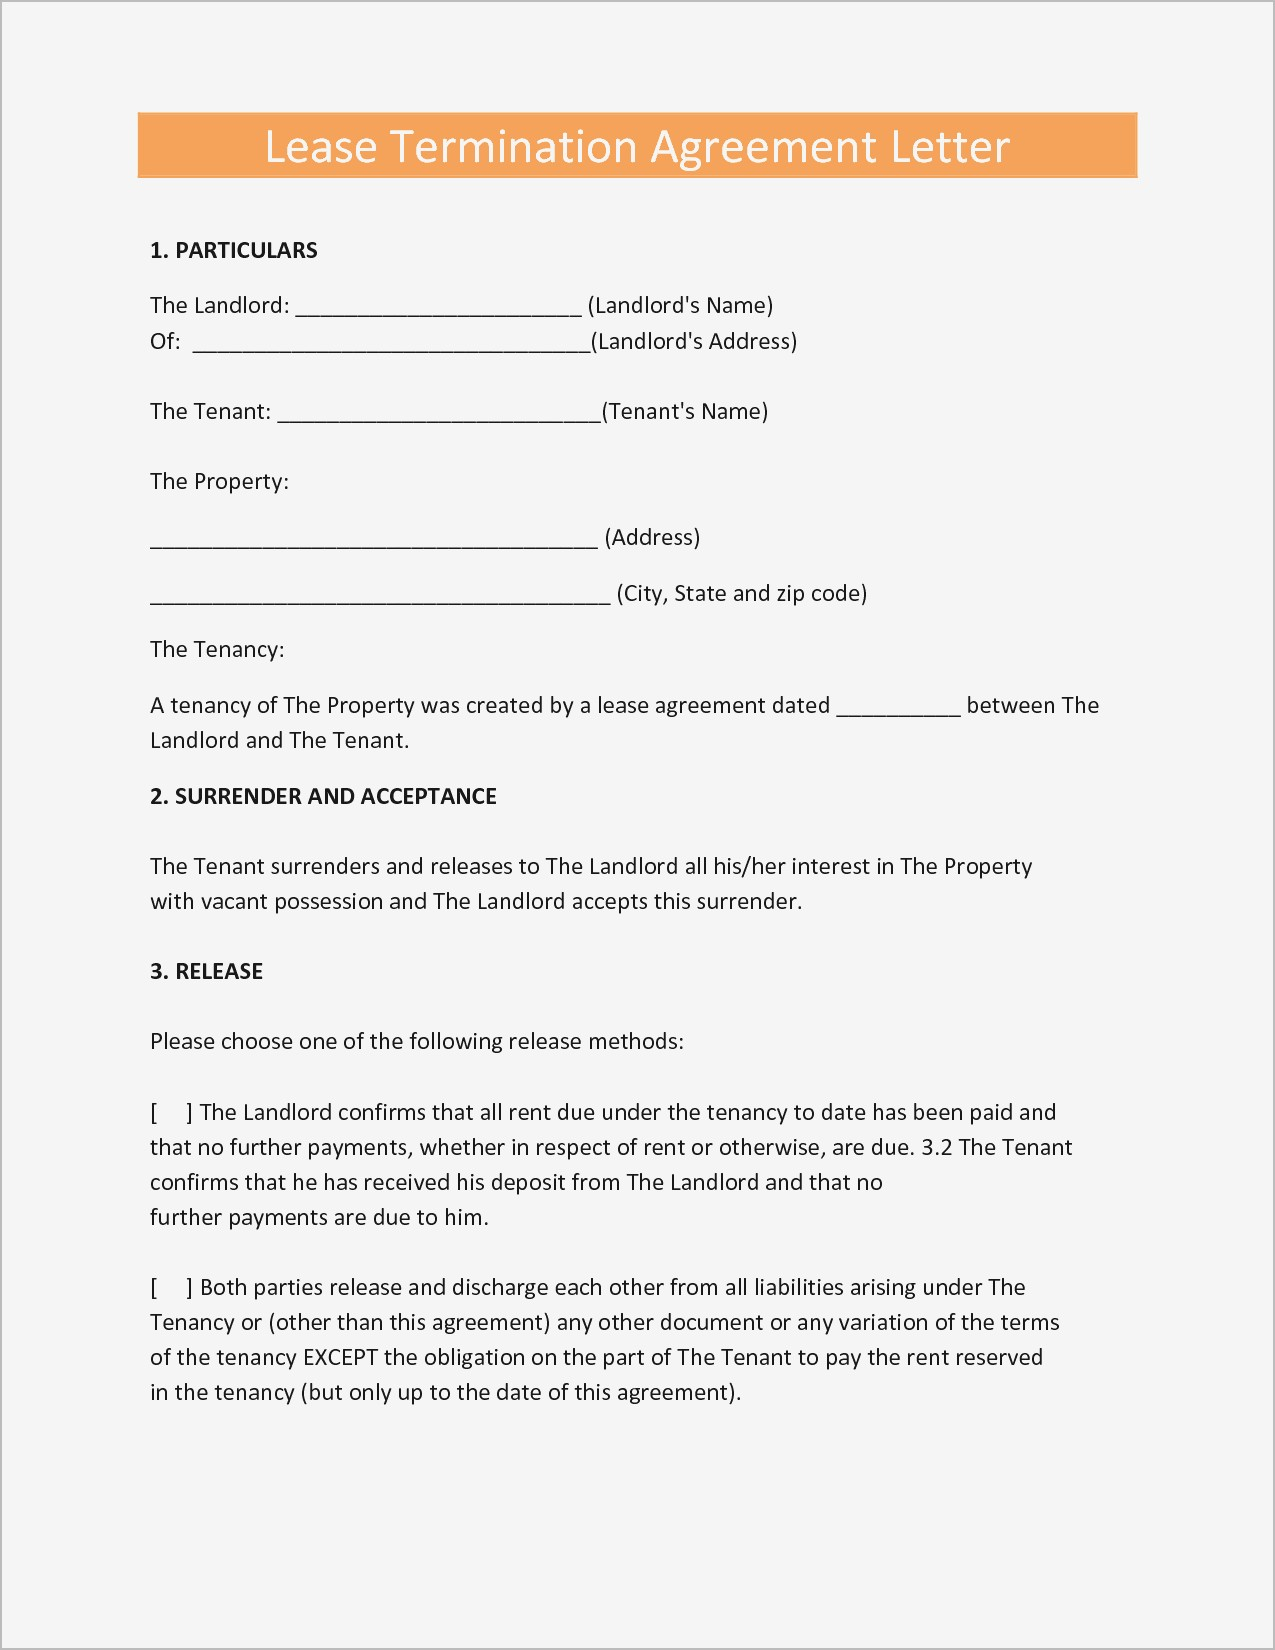 Lease Termination Letter to Tenant Template - Lease Agreement Letter Samples